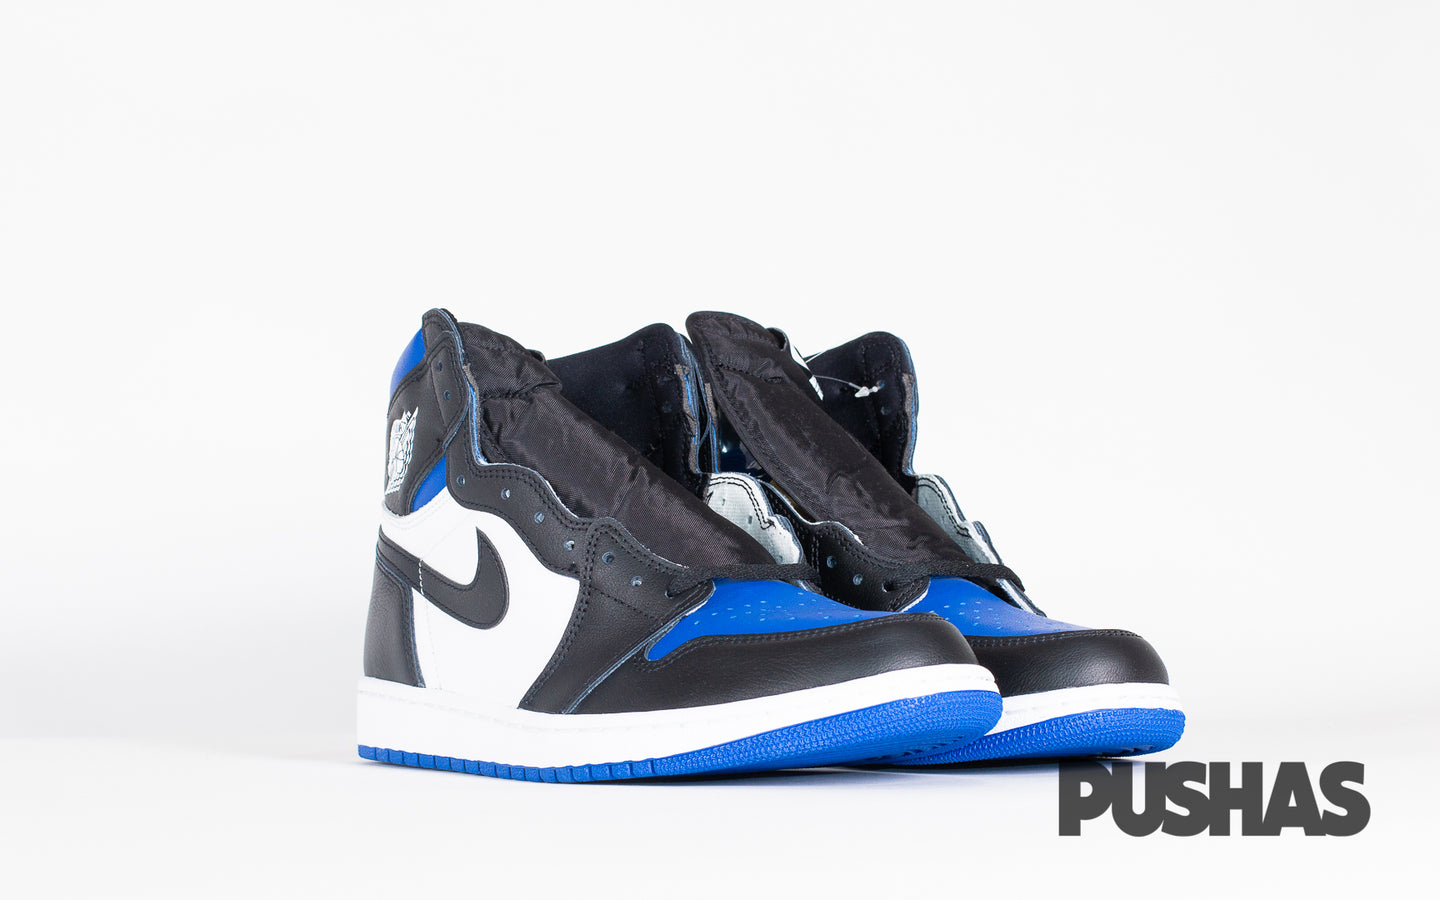 pushas-nike-Air-Jordan-1-Royal-Toe